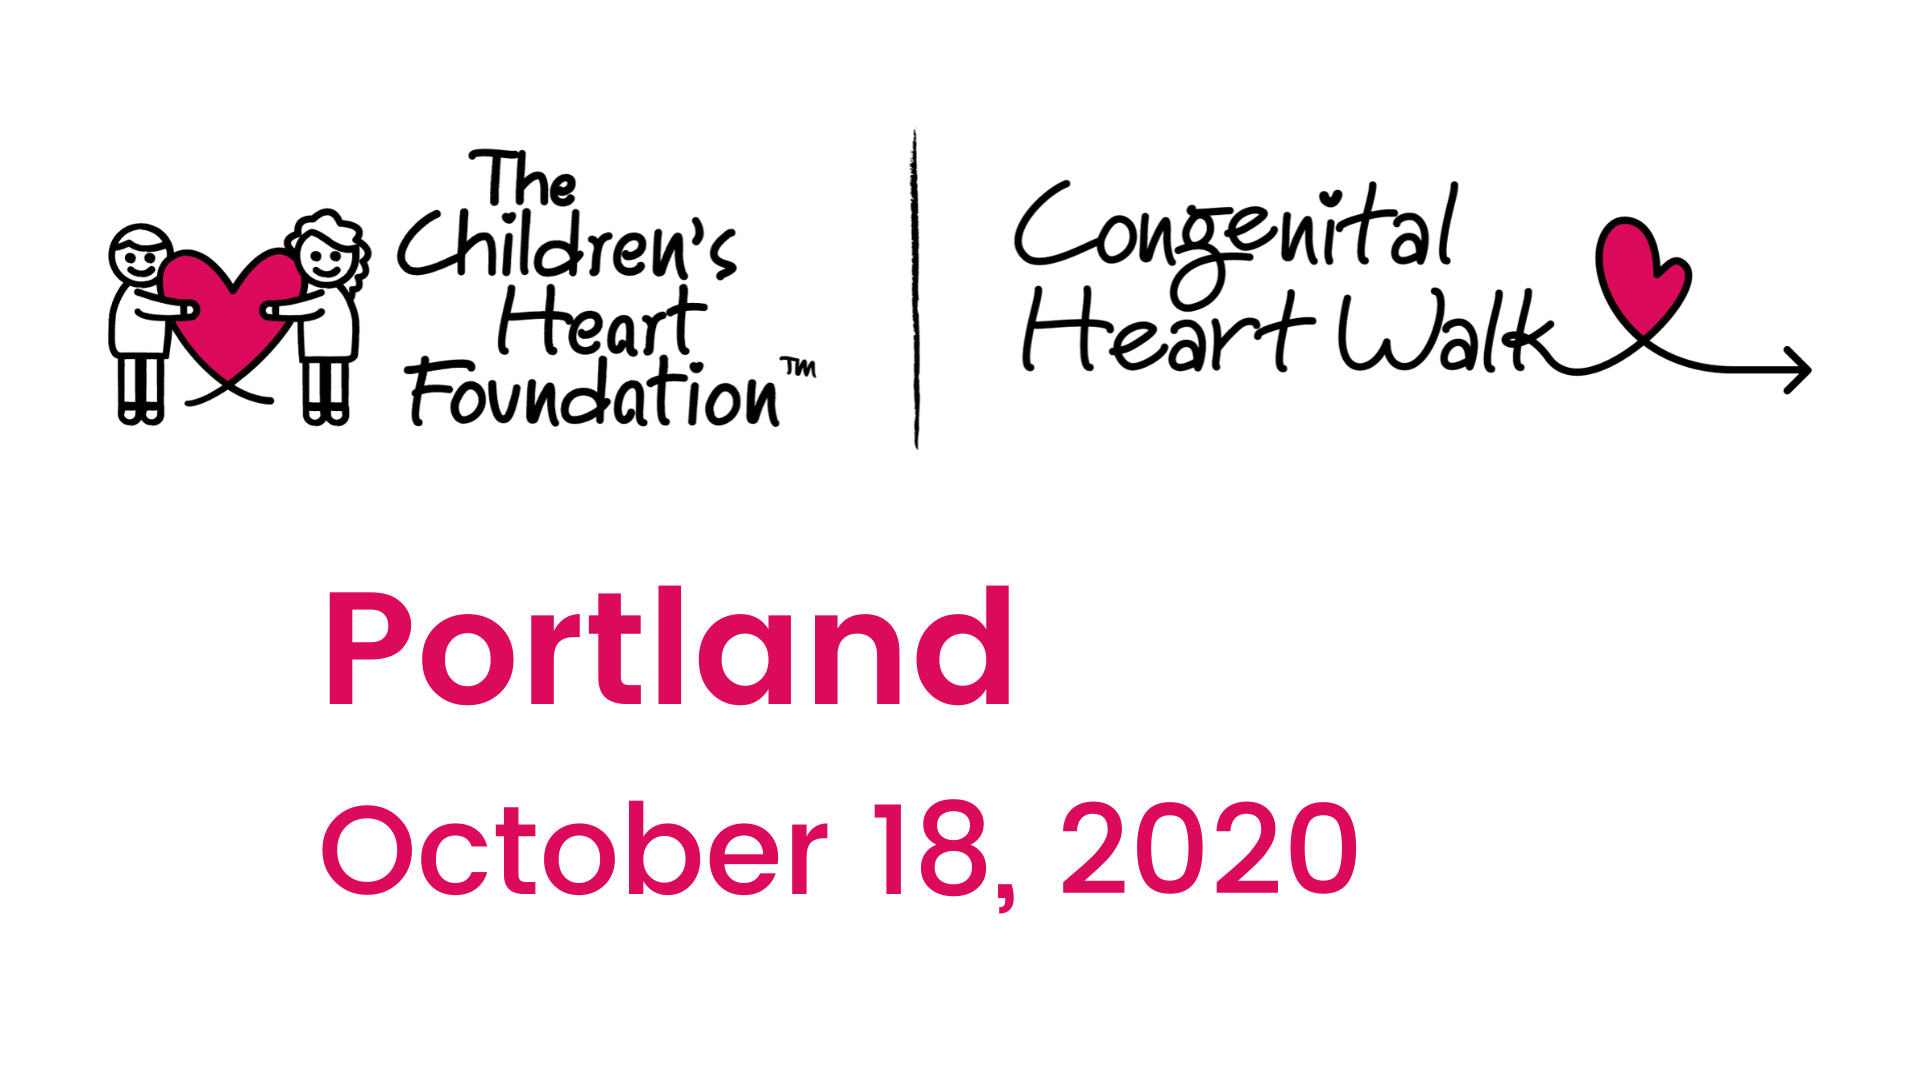 Portland Congenital Heart Walk (Oregon)